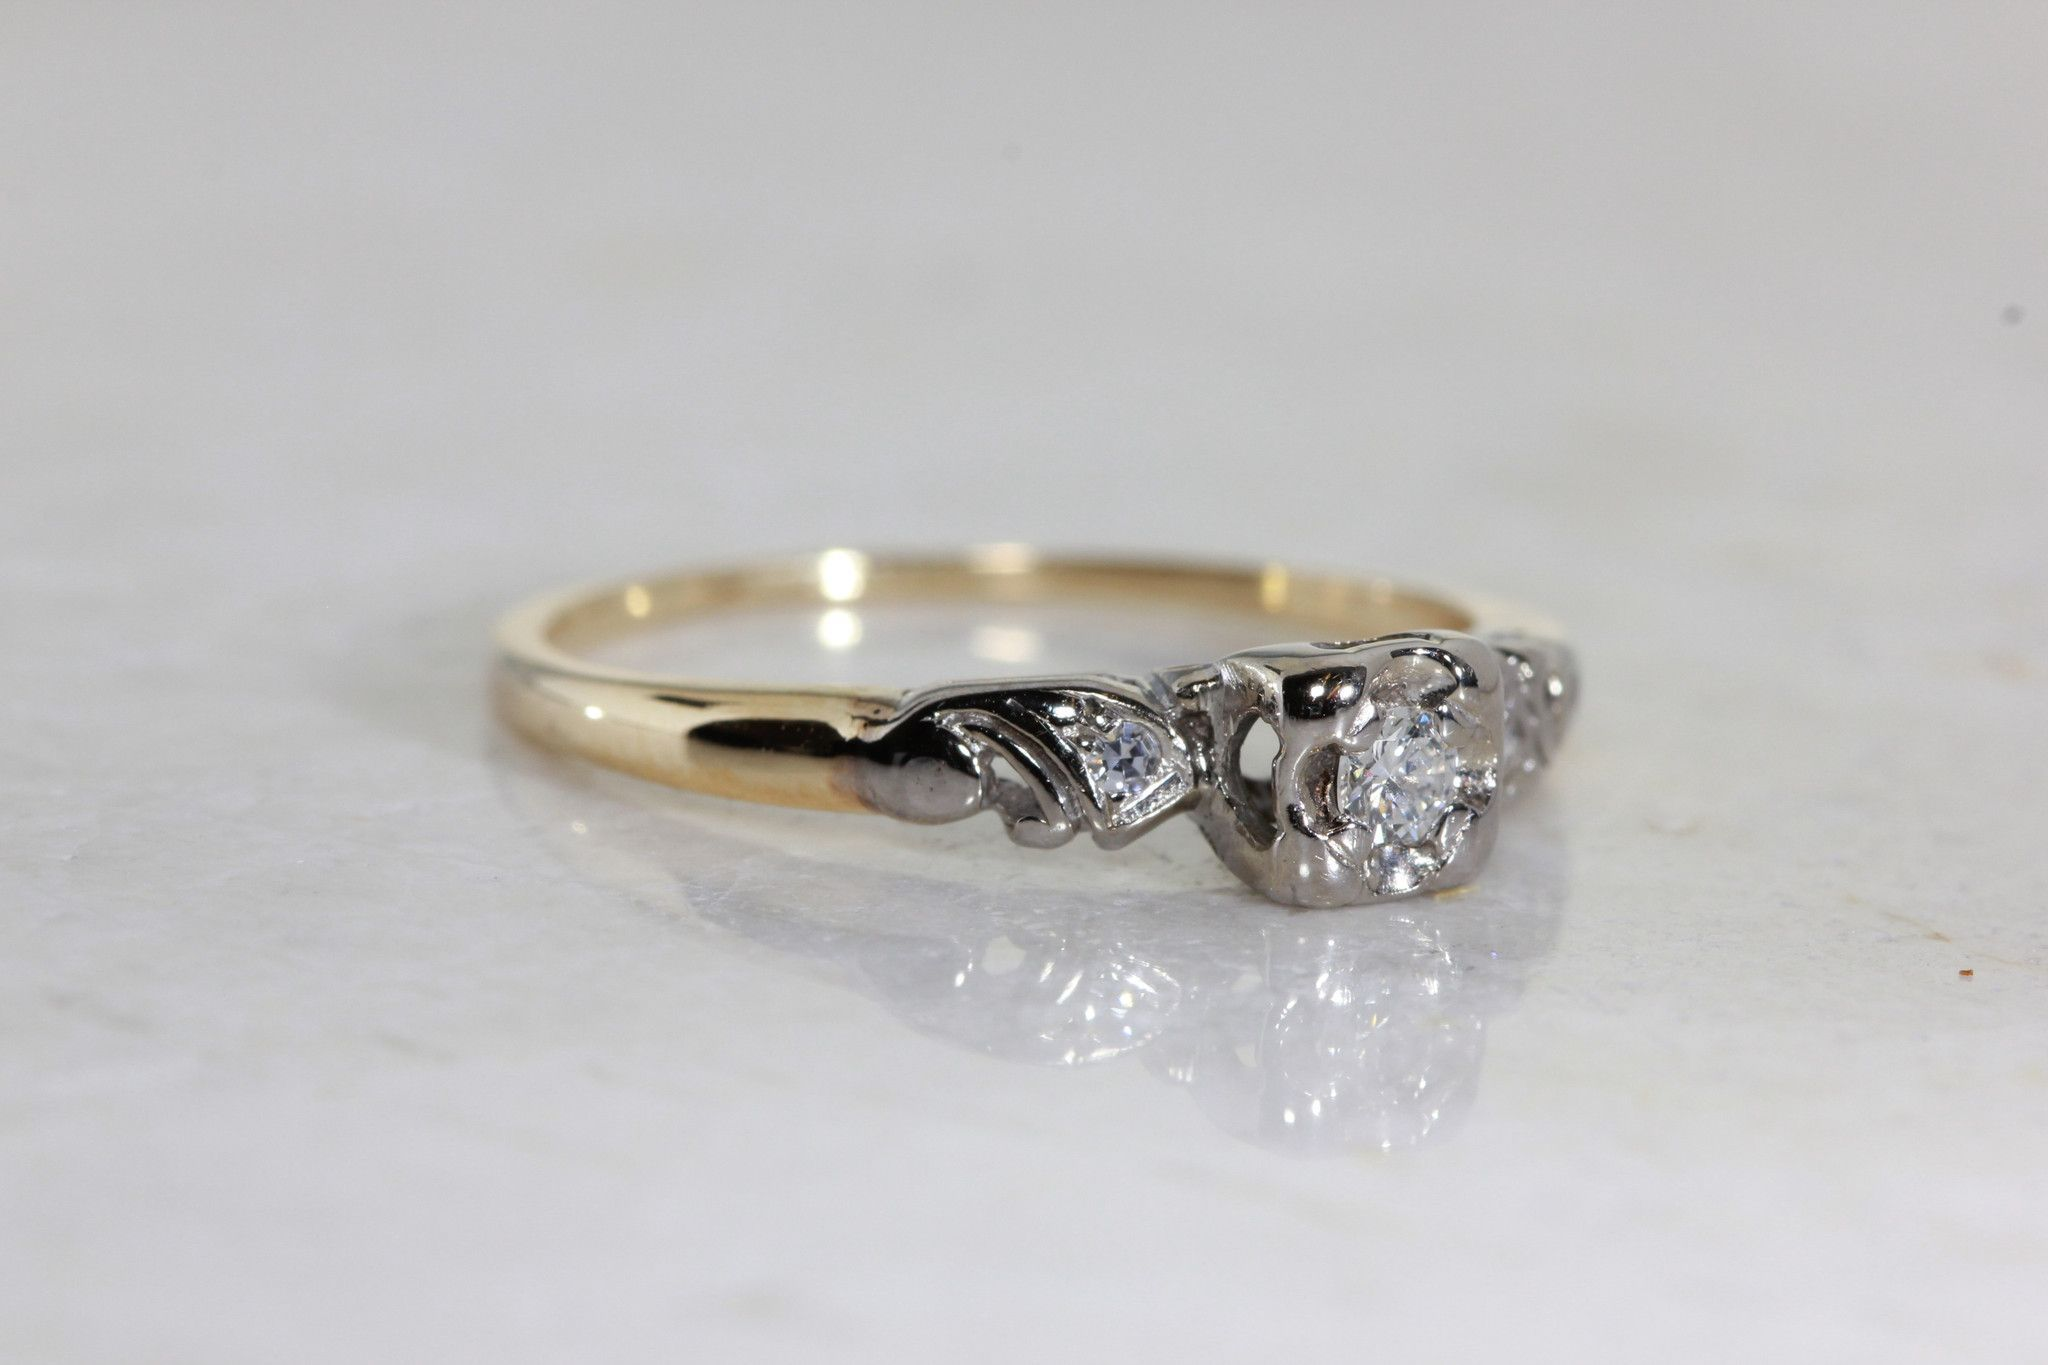 d6143909d5cd1 ANTIQUE 1940's VINTAGE ENGAGEMENT RING 14k WHITE & YELLOW GOLD ...